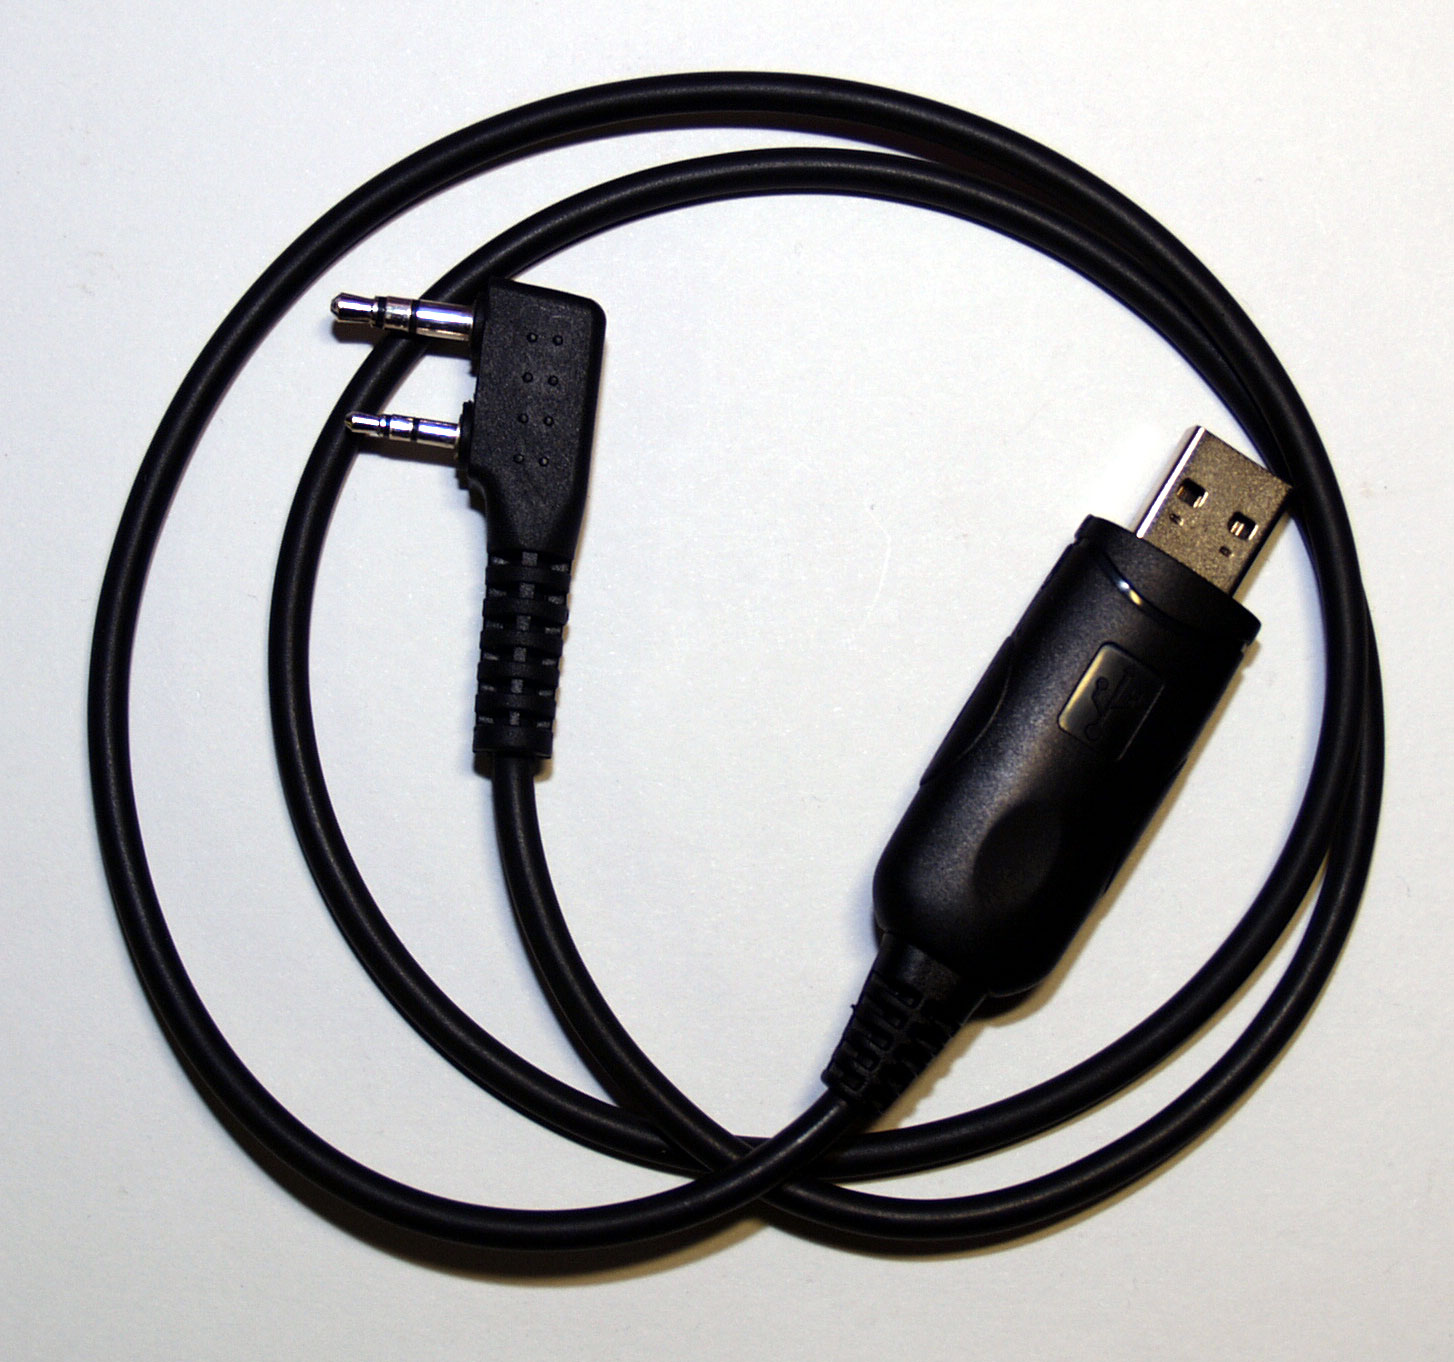 USB Programming Cable for Baofeng UV-5R, Quansheng TG-007, TYT TH-UVF8/9, TH-446, X-3 & Vero VR-500 tr